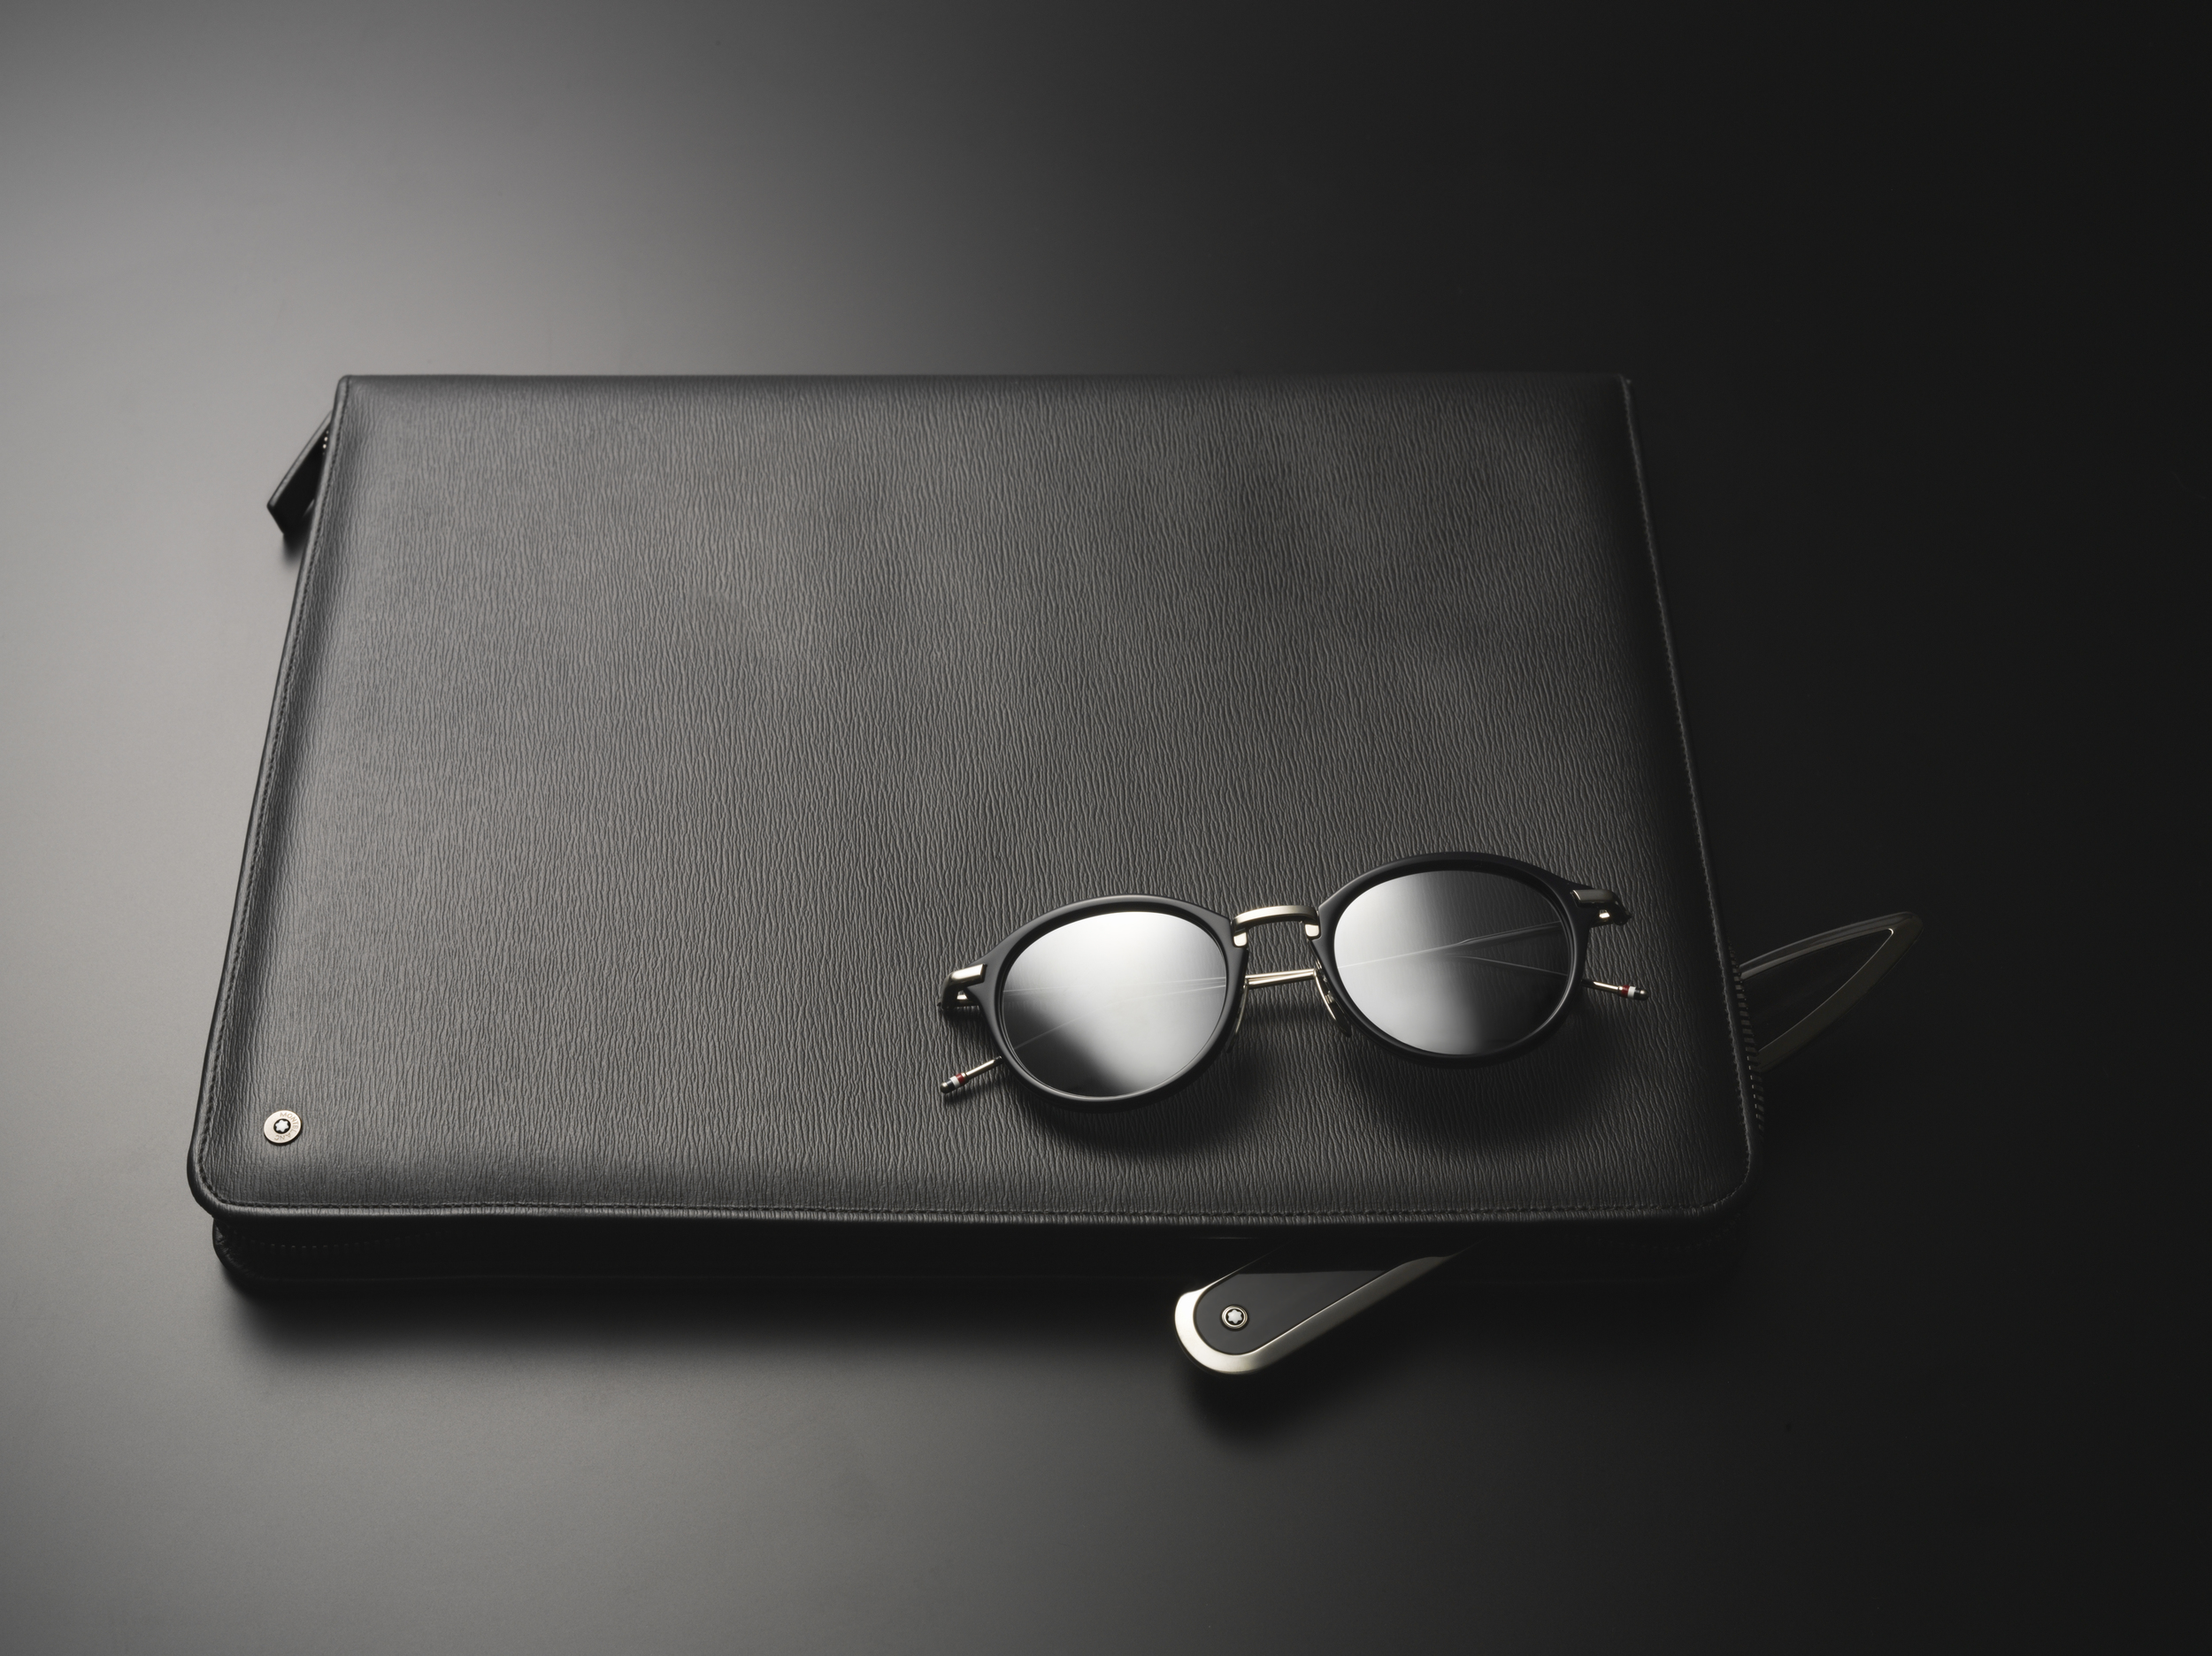 Mont Blanc  leather briefcase and letter opener,  Thom Browne  sunglasses